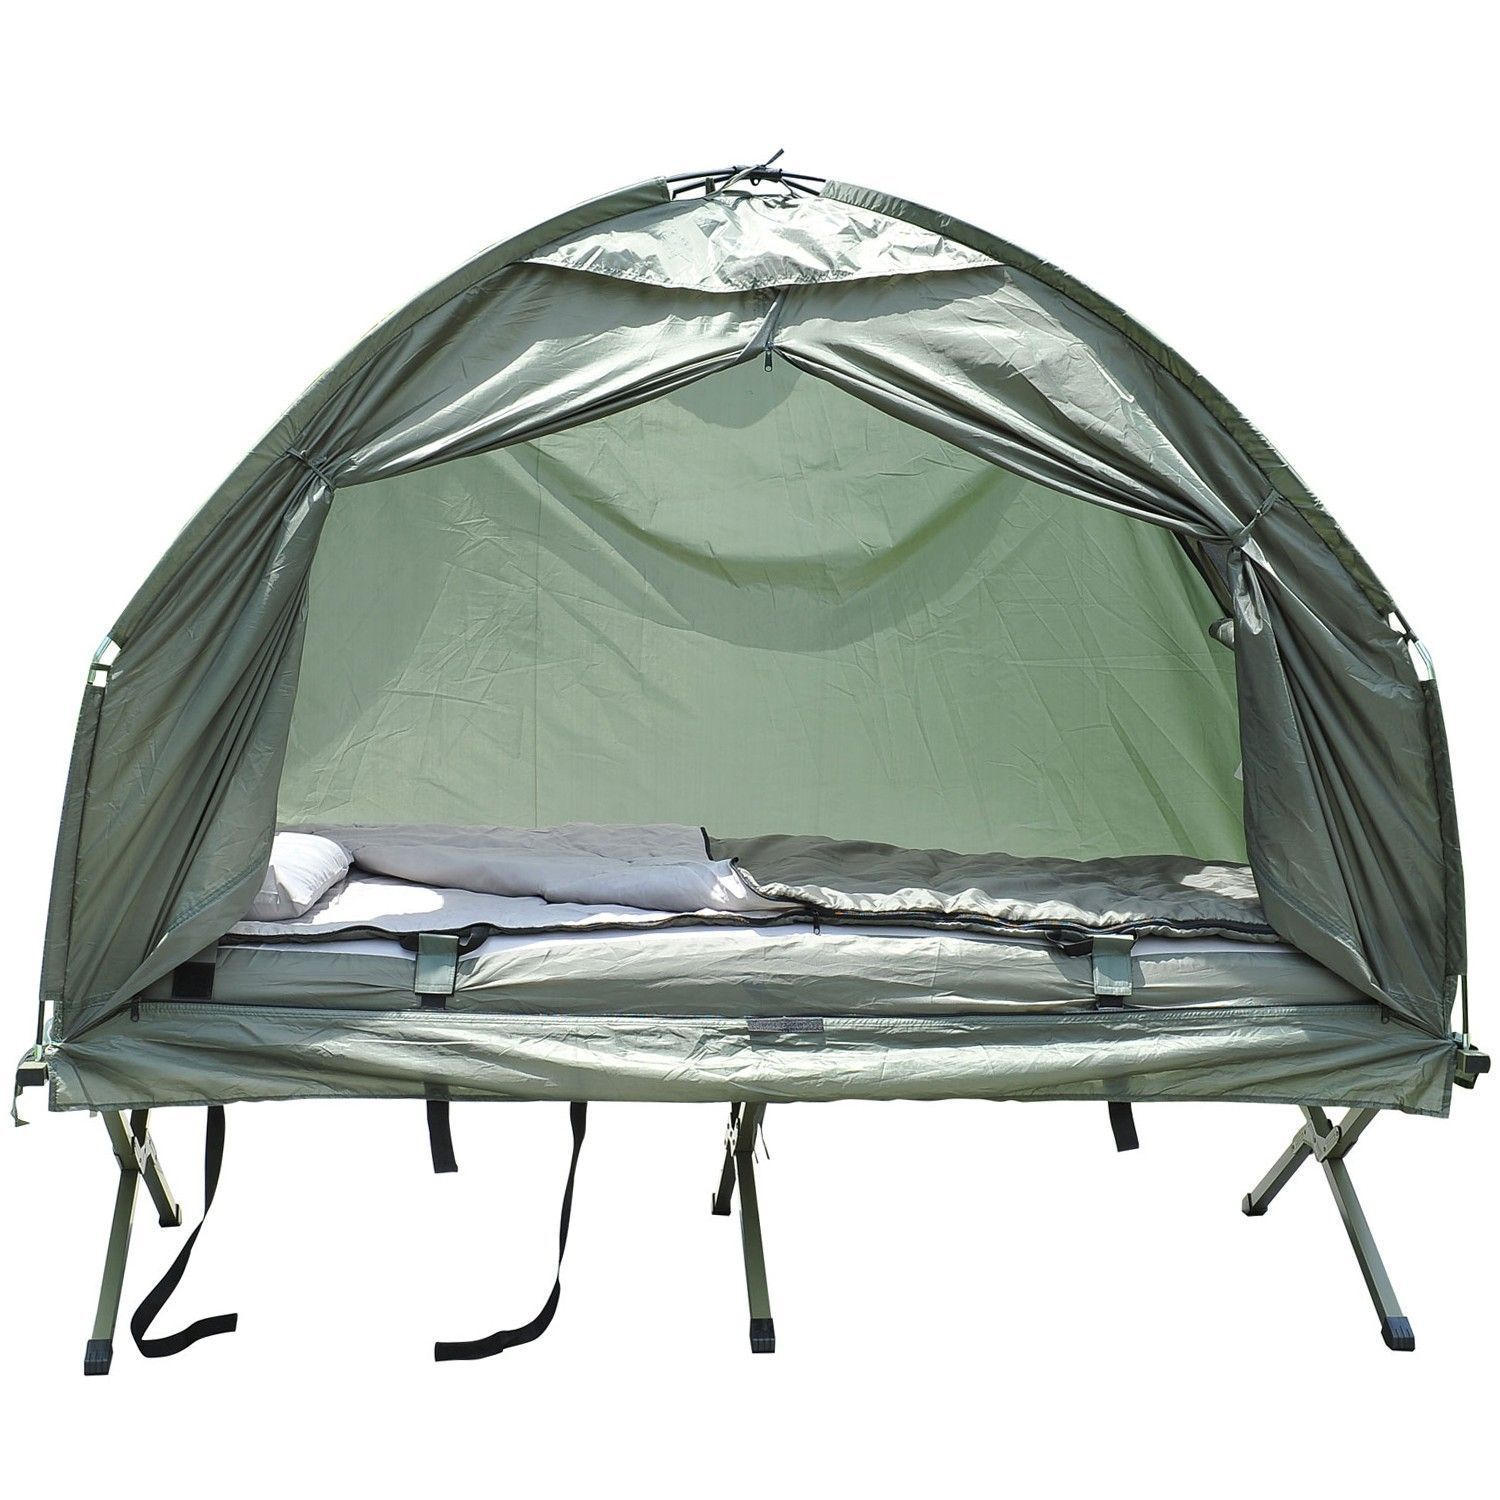 Pop Up Tent Cot Air Mattress Sleeping Bag Combo Outdoor Campign Instant Shelter All Proceeds Go To Help The Disabled Tent Cot Camping Cot Air Mattress Camping